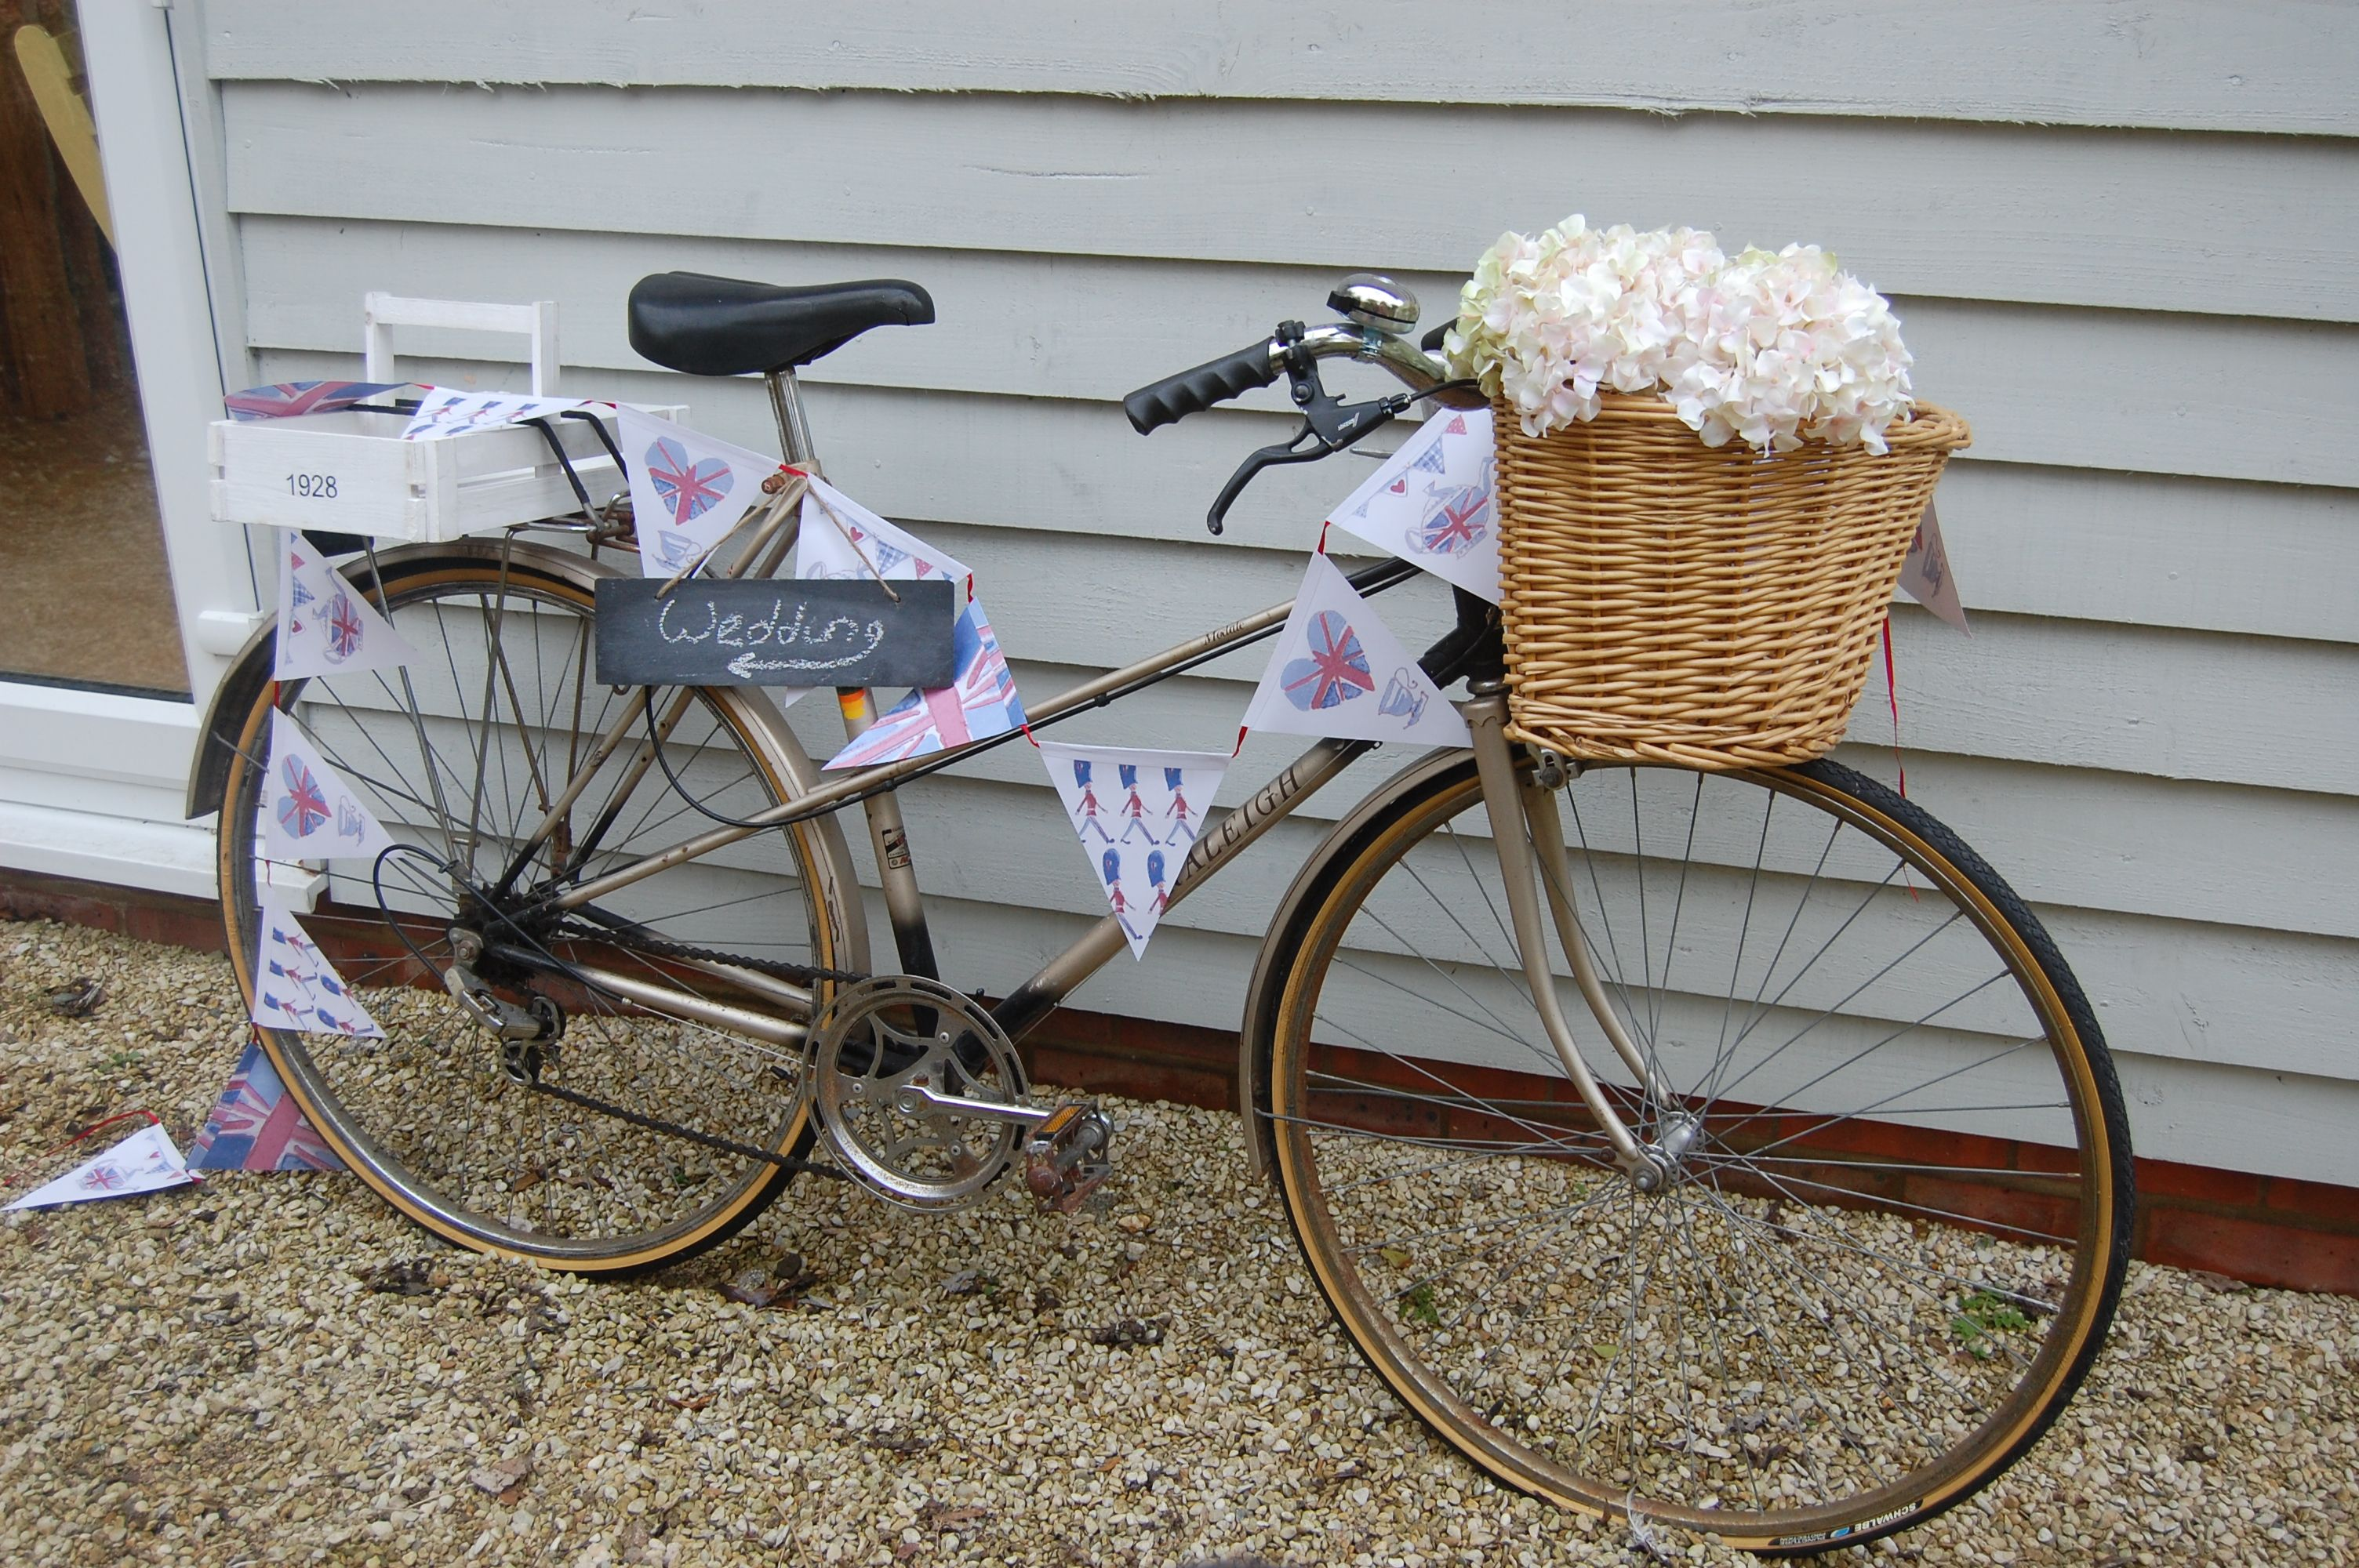 Pretty Perfect Cakes -Vintage Bike to hire  http://www.prettyperfectcakes.com/gallery/vintage-china